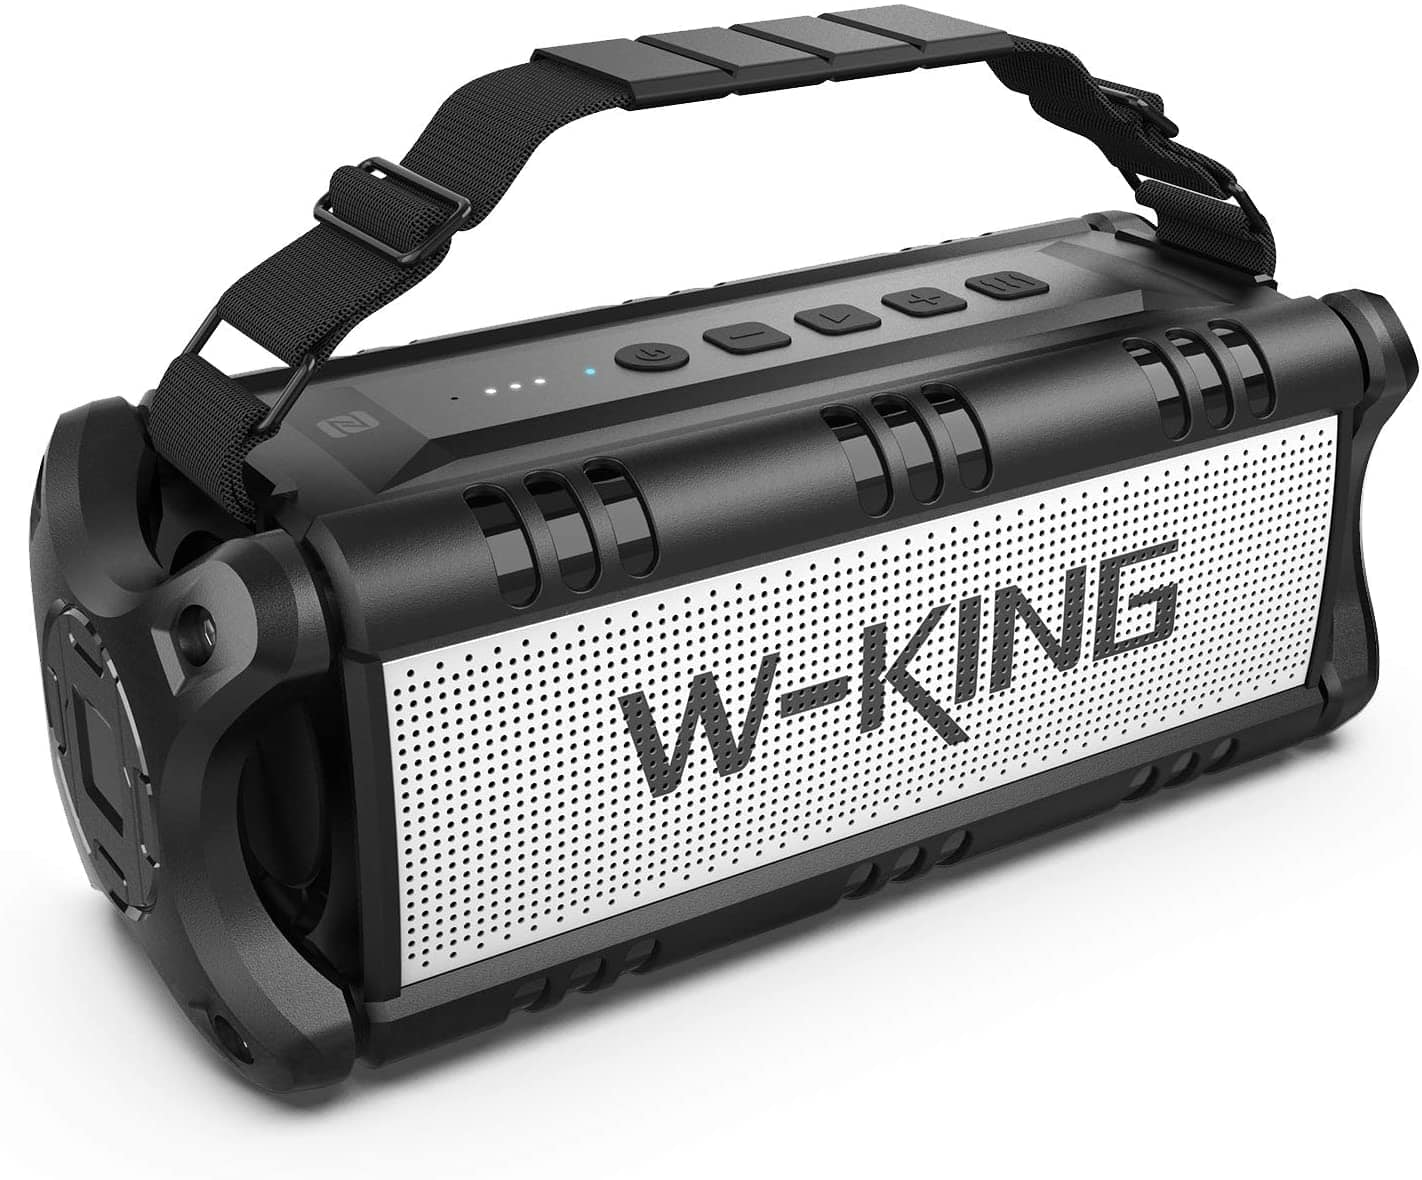 W-KING 50W(70W Max) Portable Wireless Bluetooth 5.0 Speaker - $50 AC after 35% Coupon